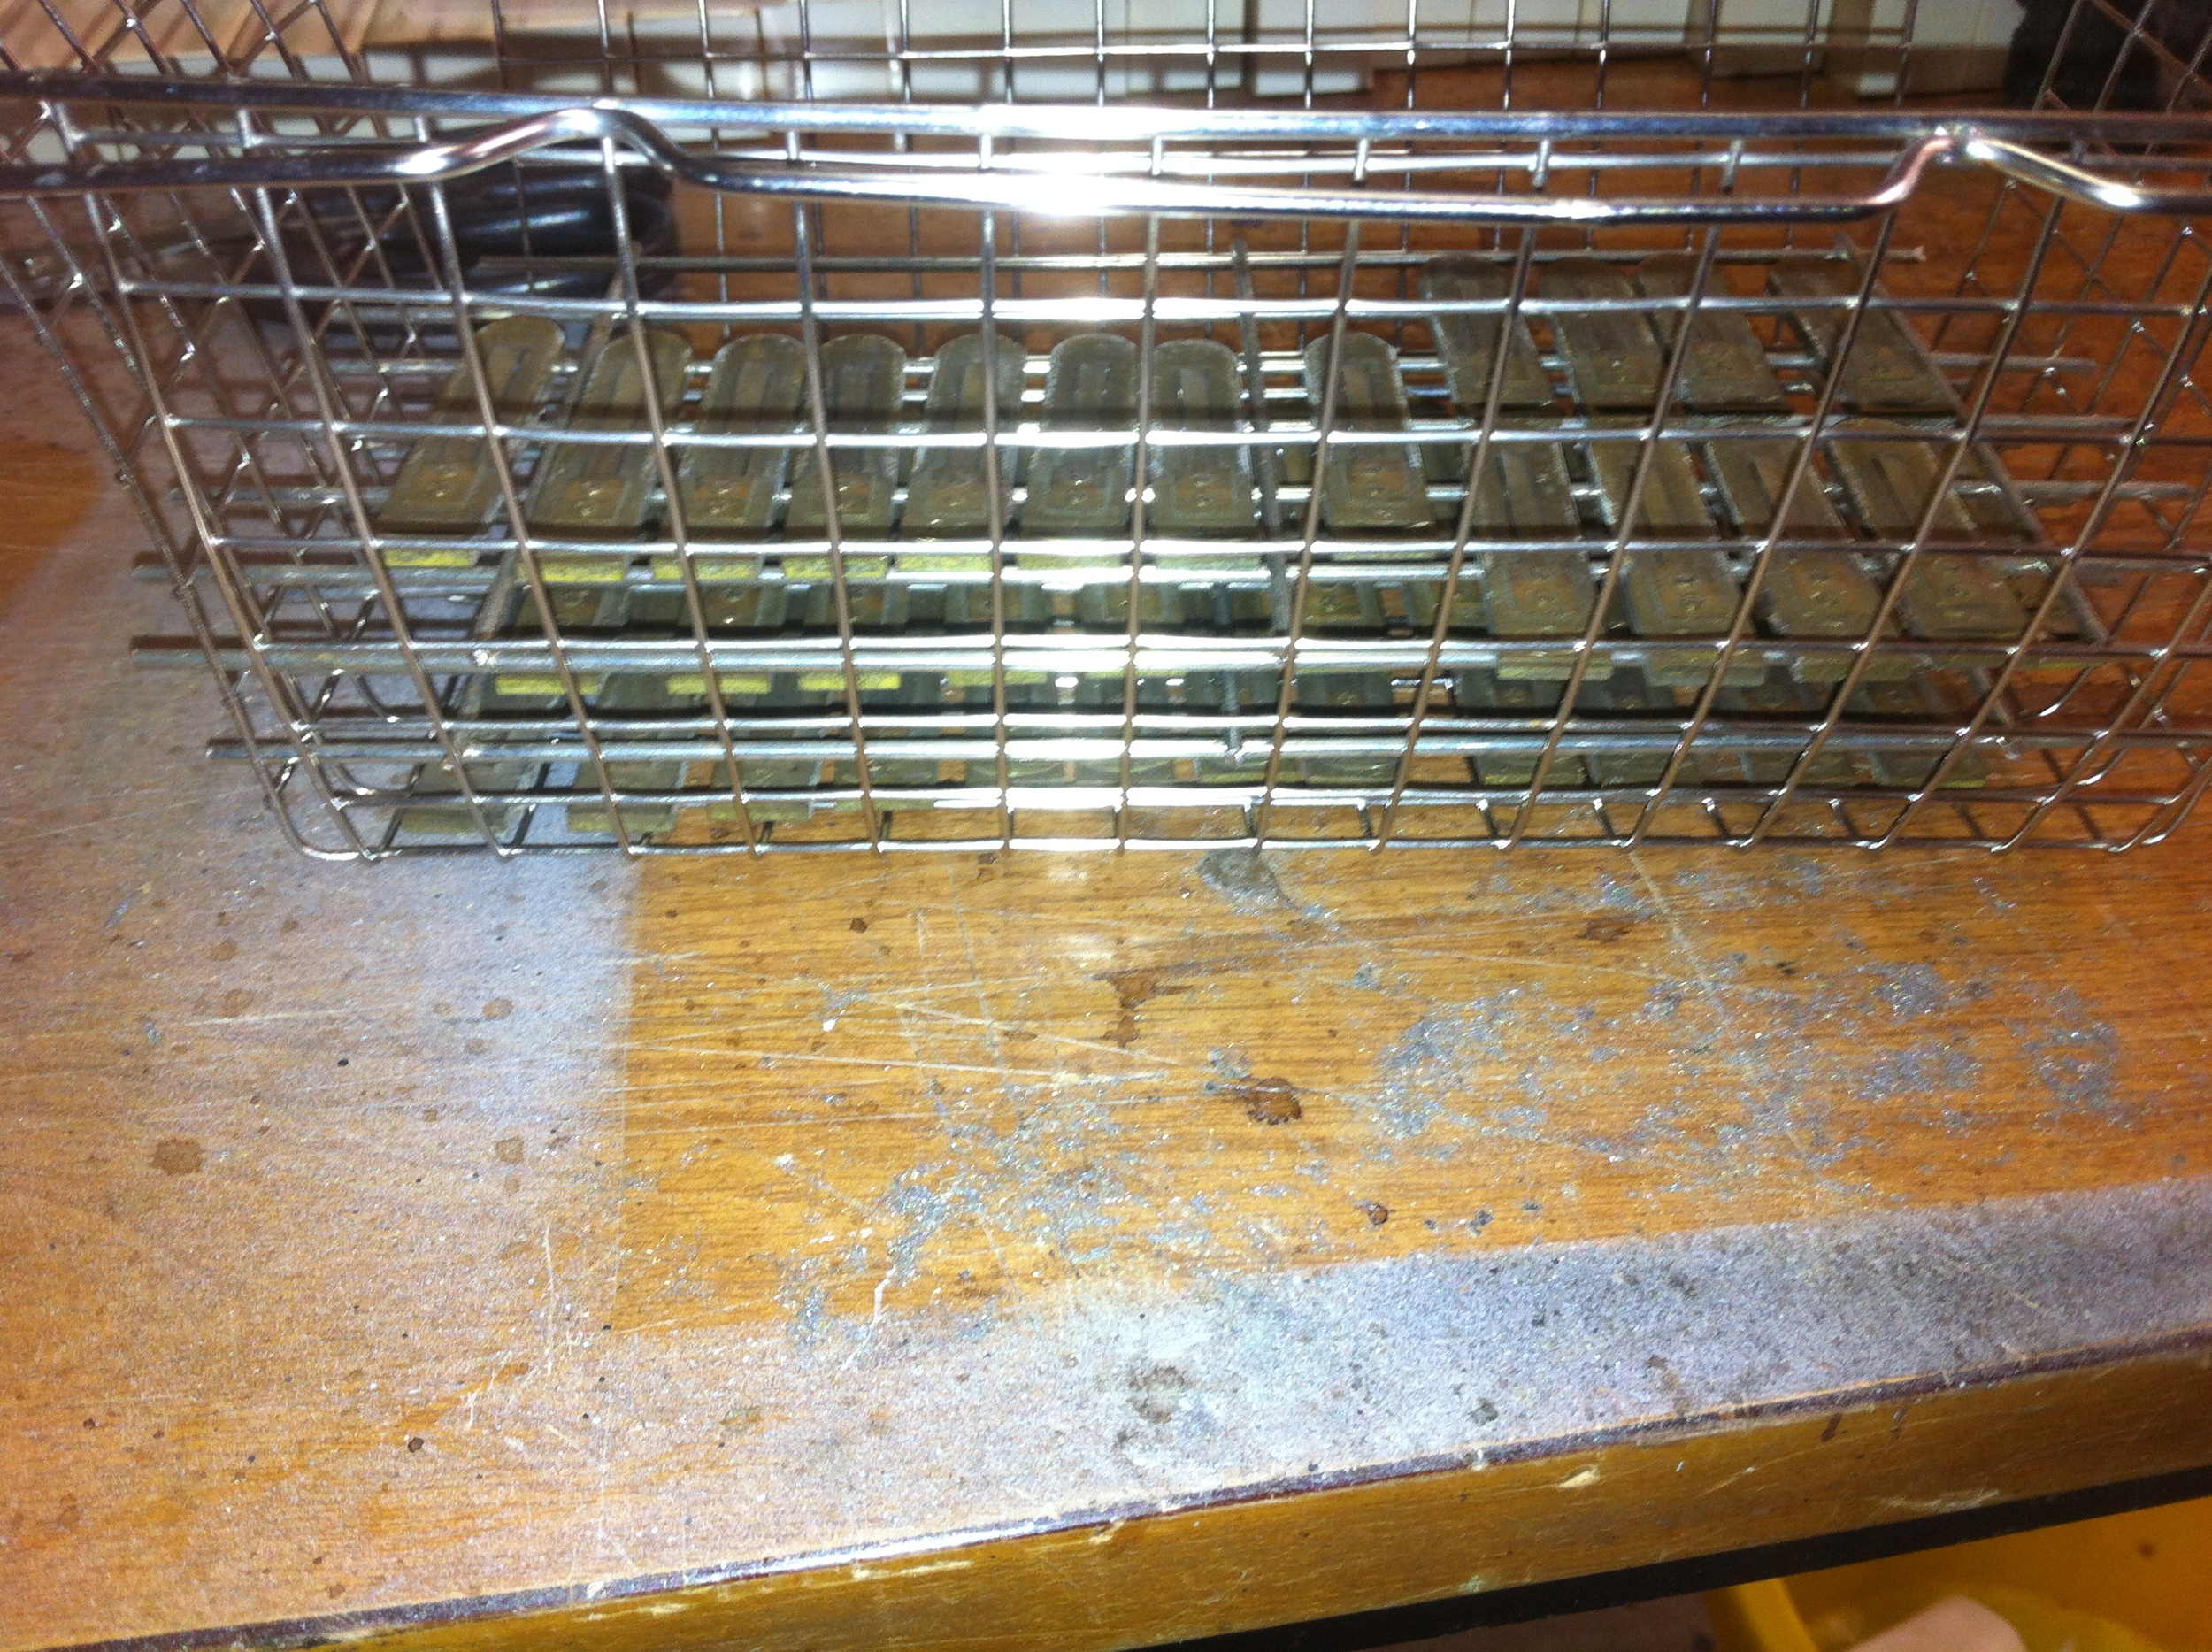 Reeds in ultrasonic cleaner basket